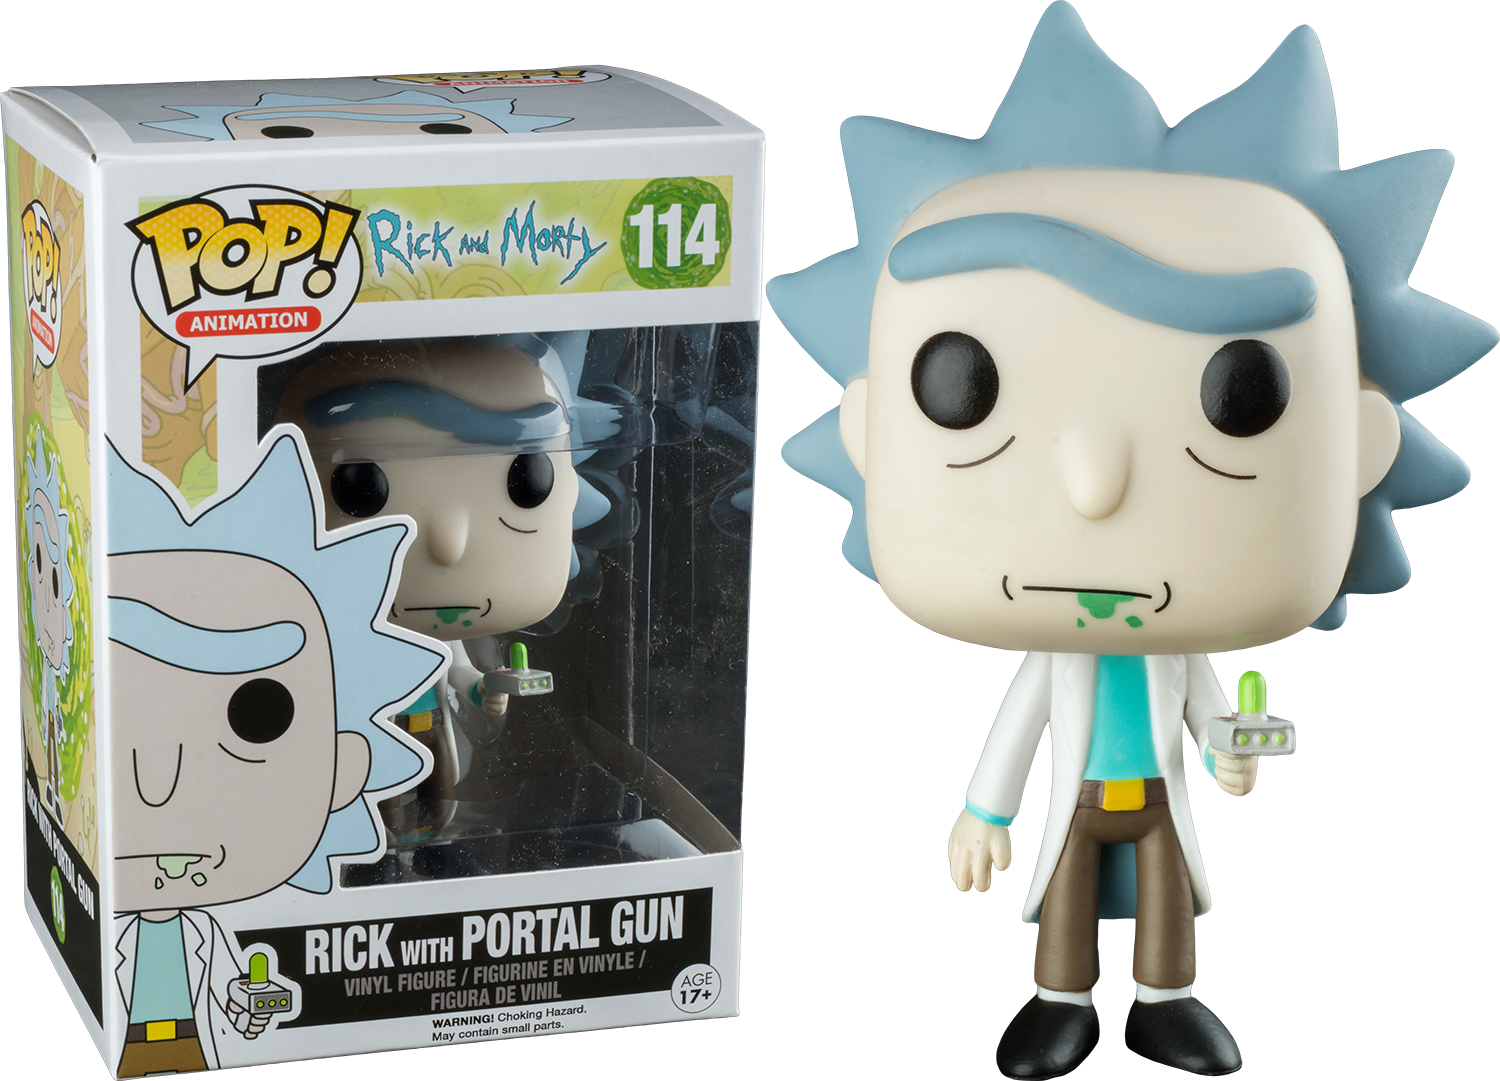 PRE-ORDER Exclusive Rick and Morty - Rick with Portal Gun Pop! Vinyl Figure